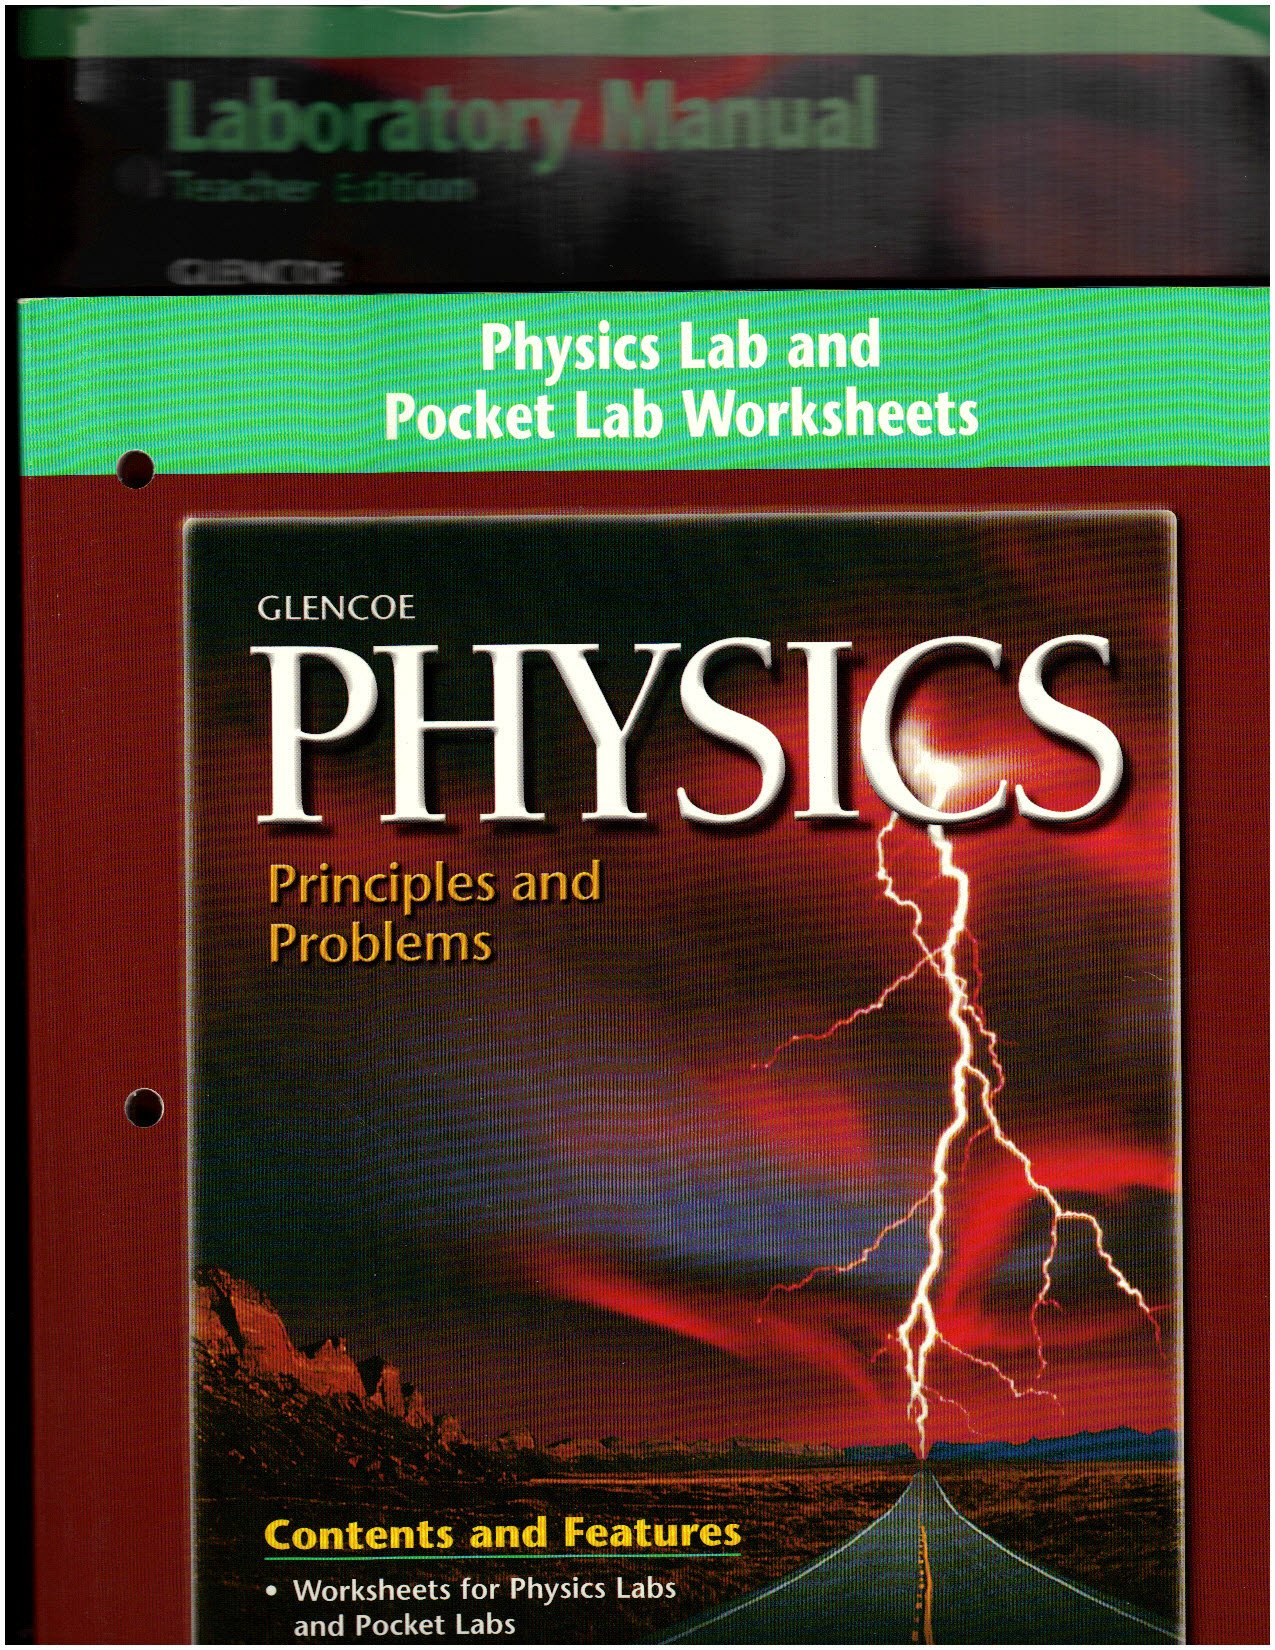 Teacher's Edition Laboratory Manual; 2. Physic Lab and Pocket Lab  Worksheets (both volumes include ANSWERS to lab exercises): Glencoe:  Amazon.com: Books